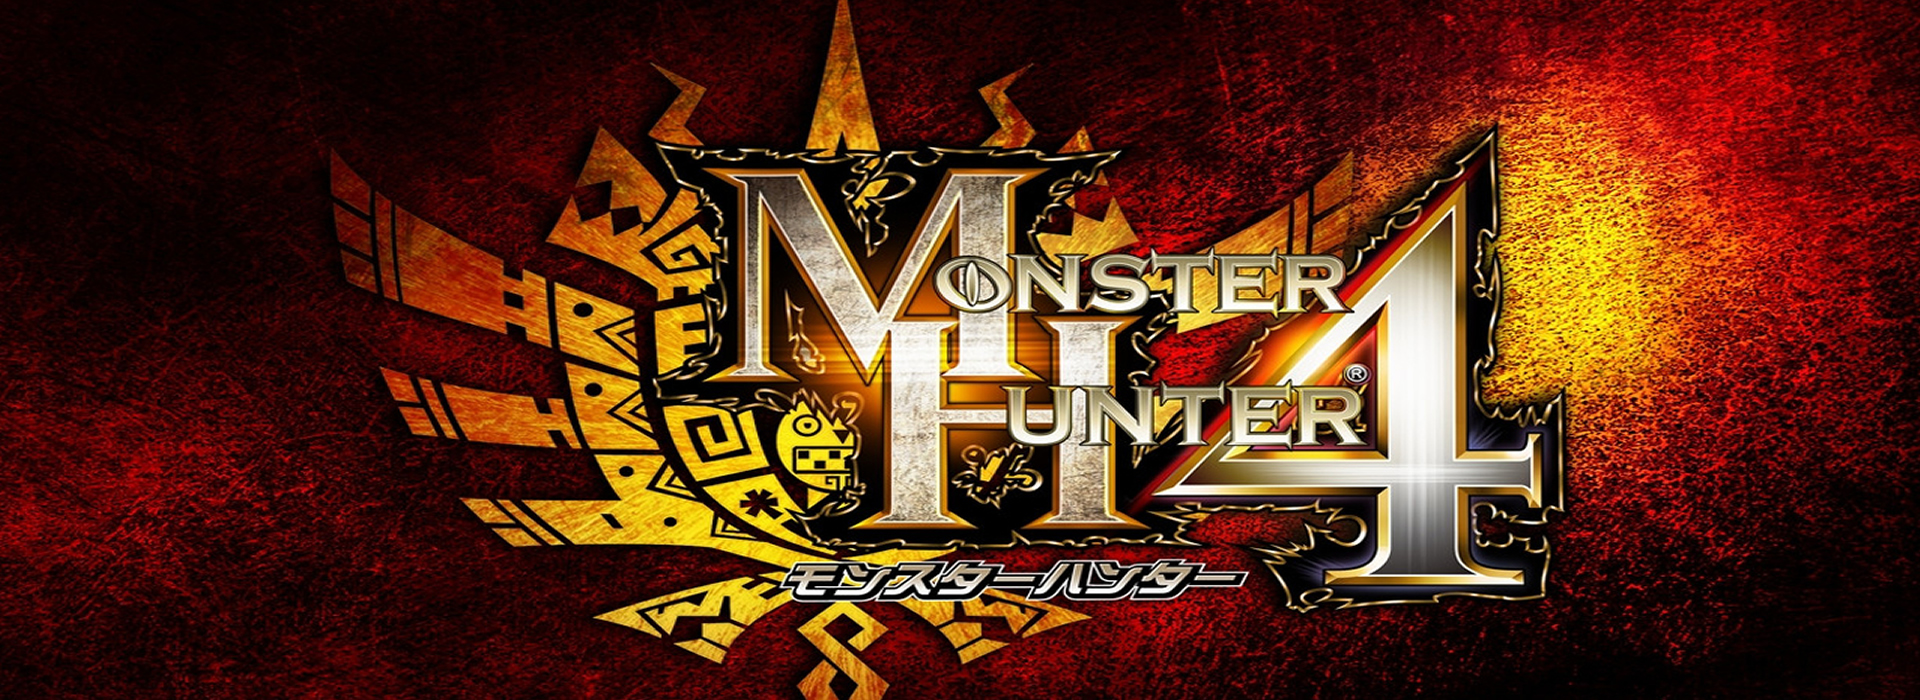 Monster Hunter 4 Ultimate Brings New Weapons, Mechanics and Monsters in 2015